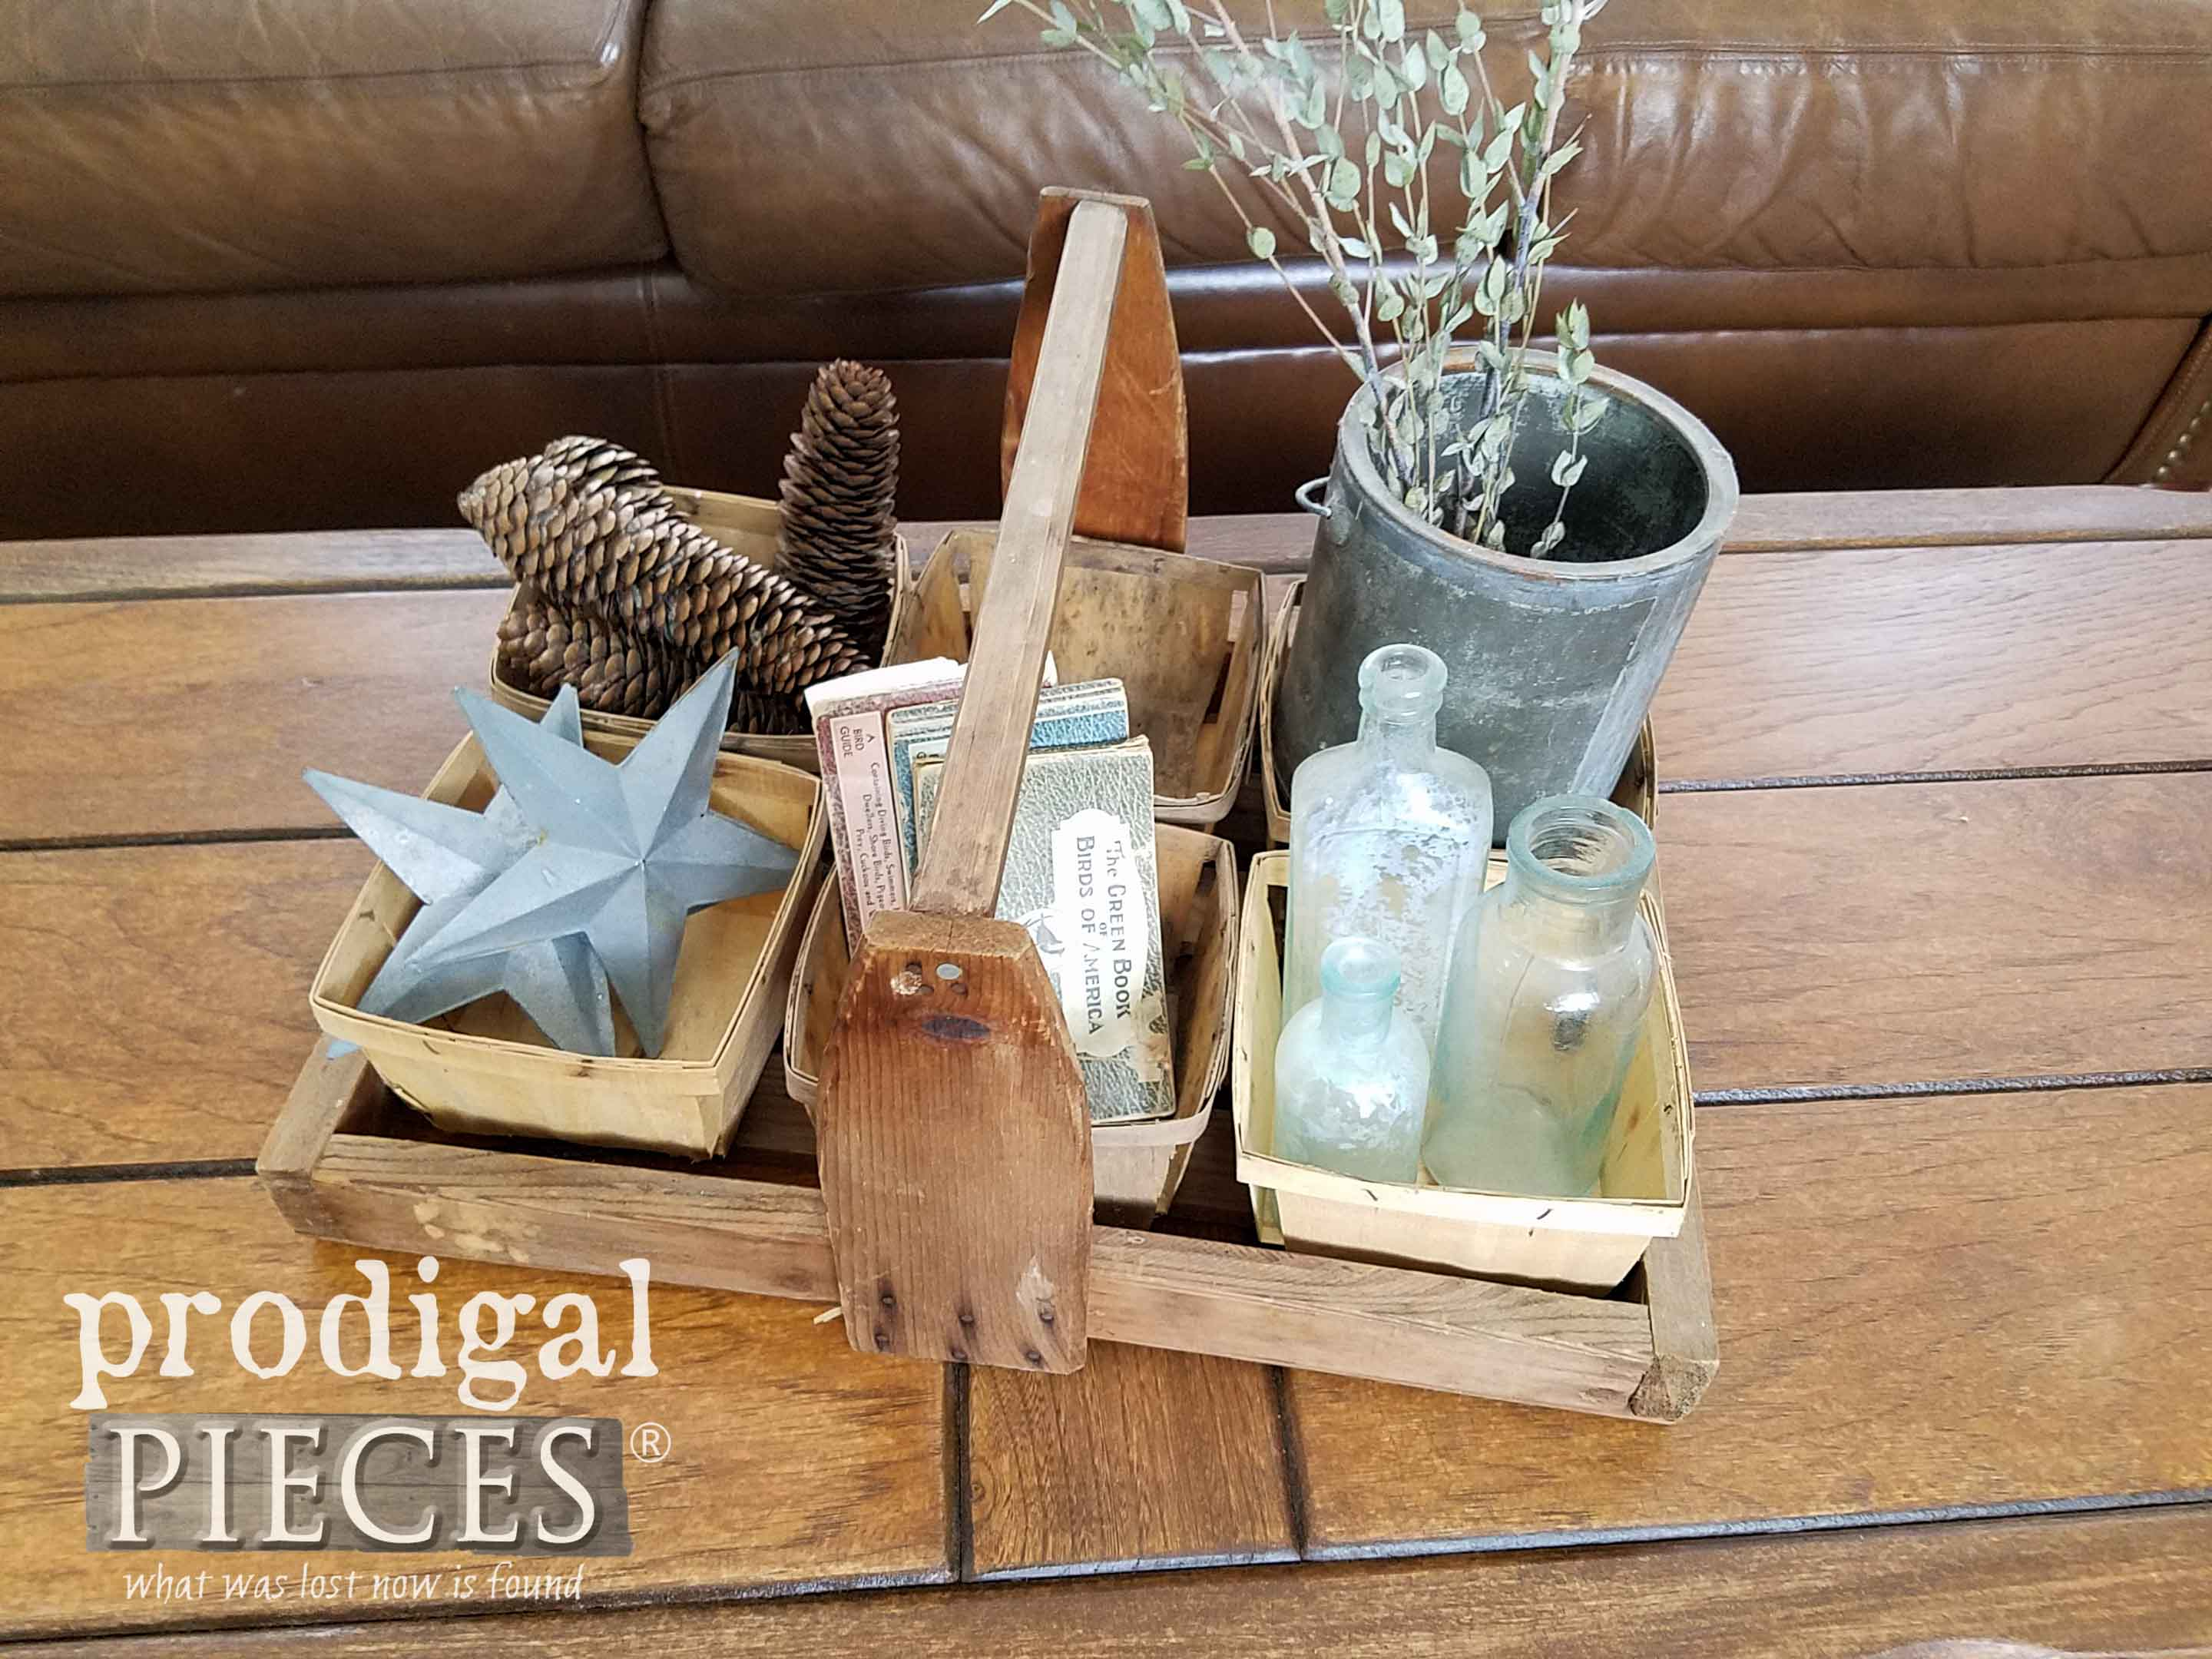 Rustic Farmhouse Decor from Flea Market Finds by Prodigal Pieces | prodigalpieces.com